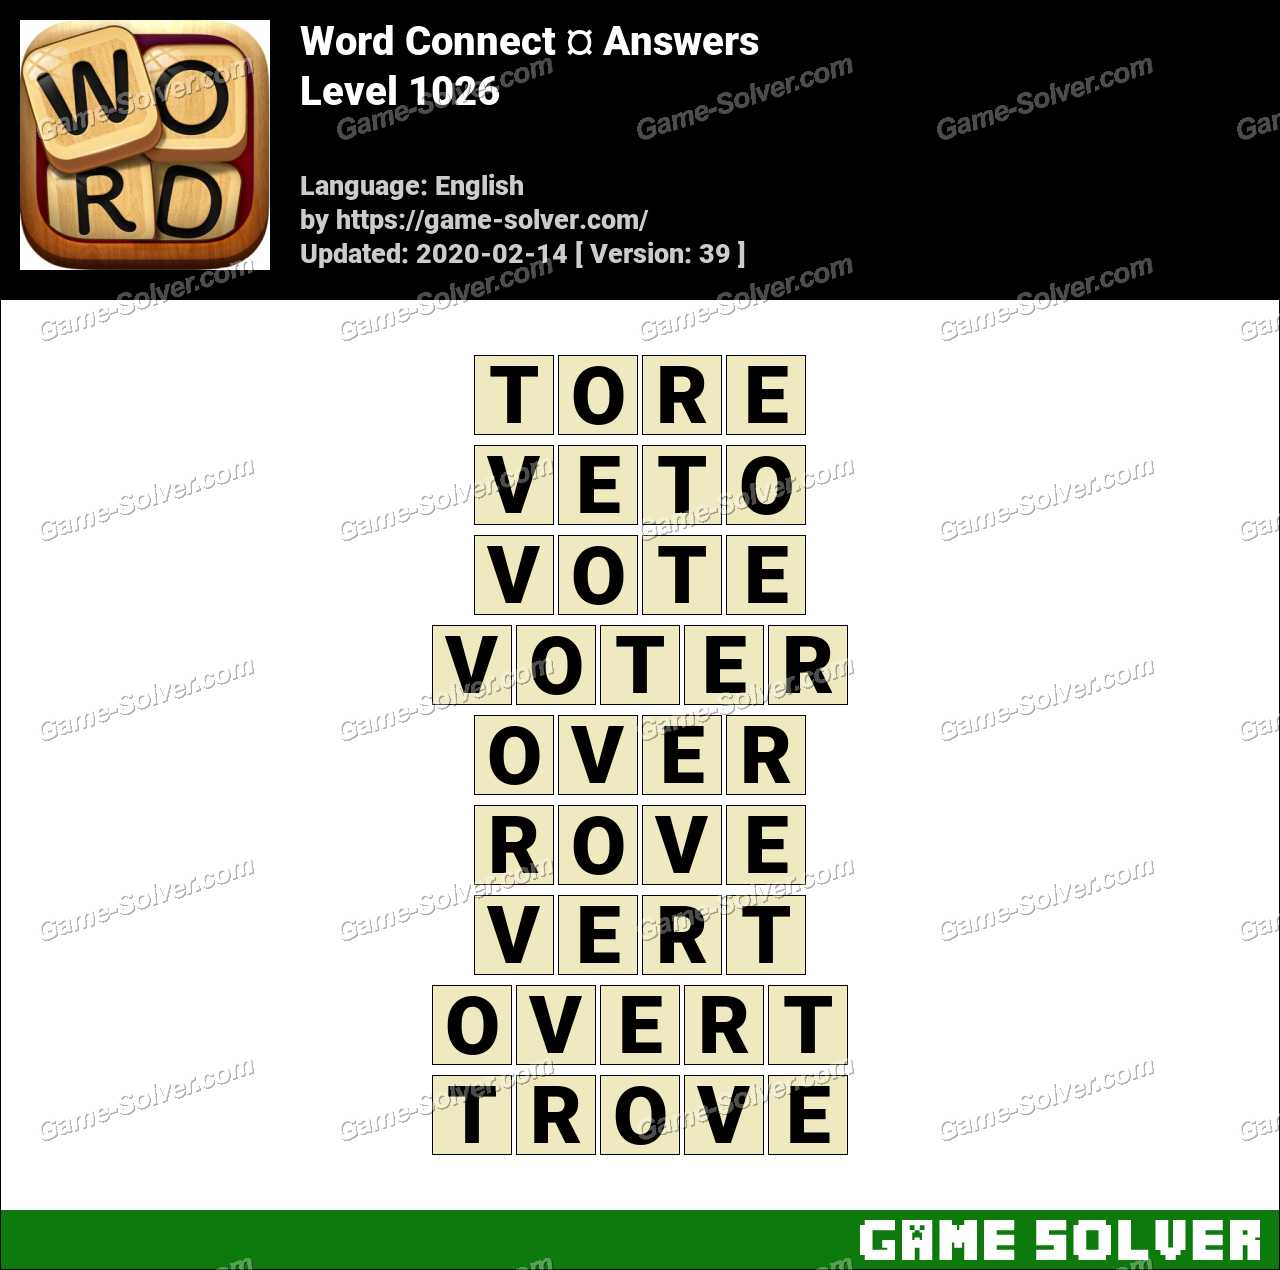 Word Connect Level 1026 Answers